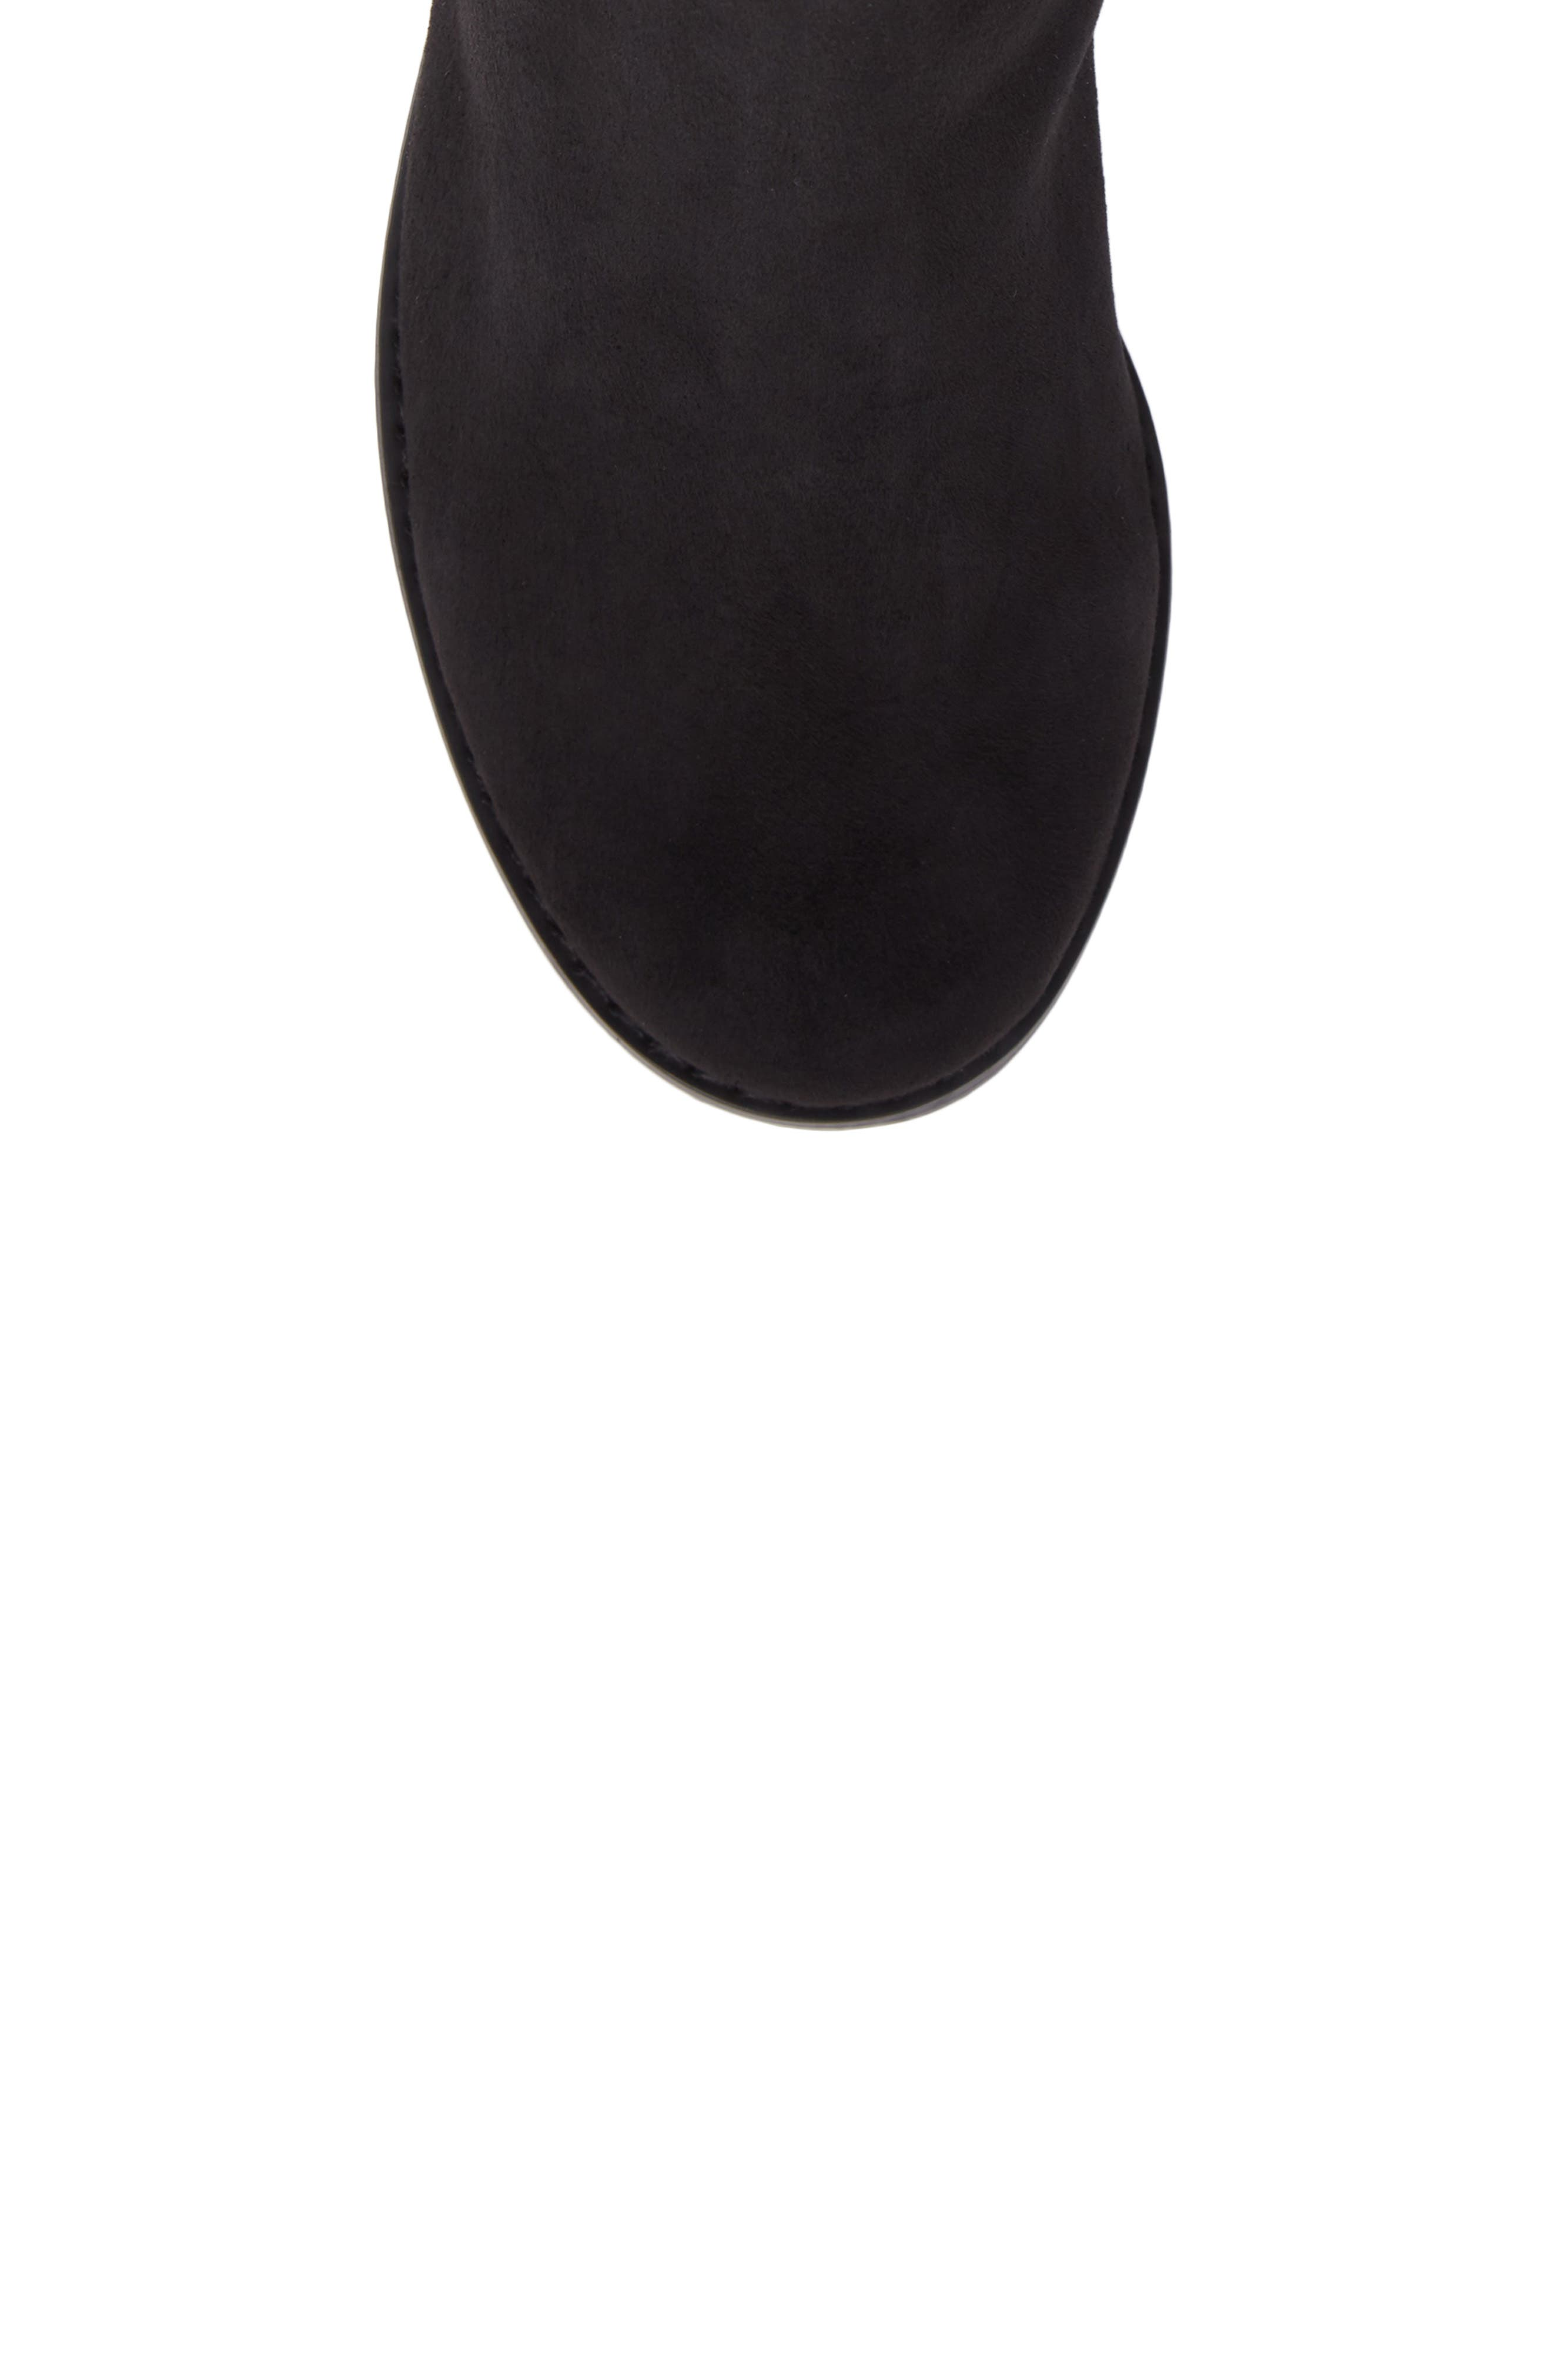 Panache Tall Boot,                             Alternate thumbnail 5, color,                             Black Suede